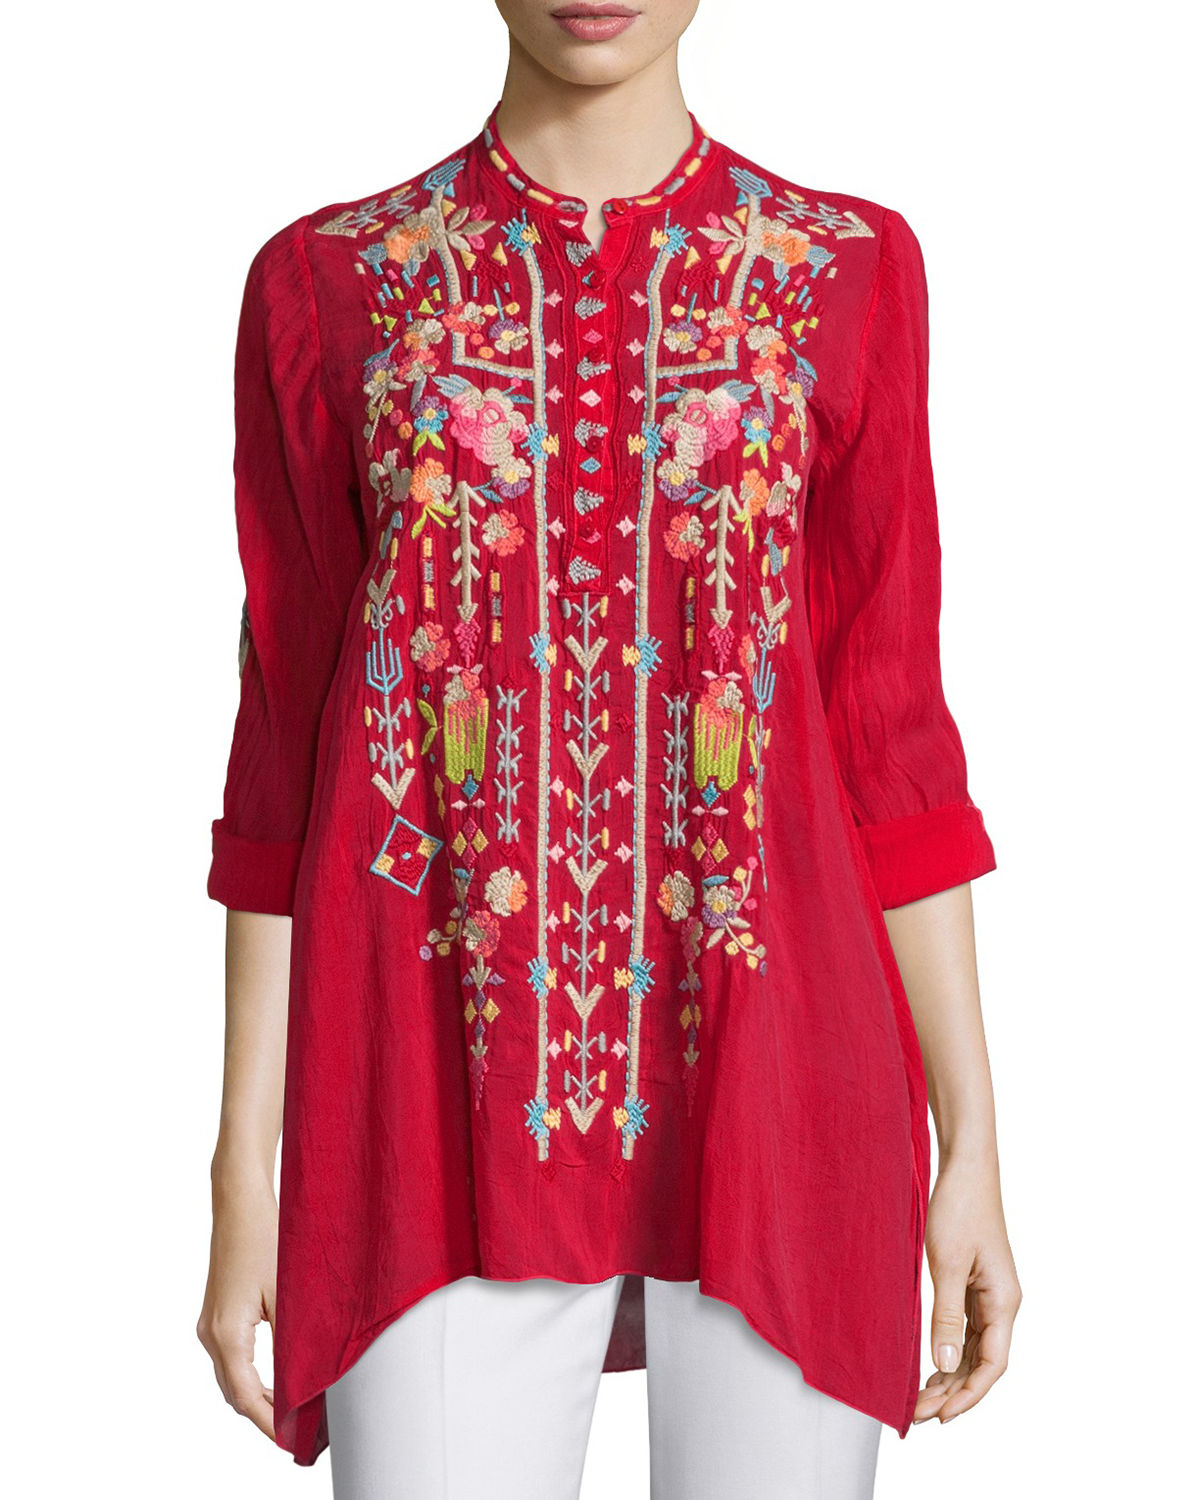 Lyst - Johnny Was Jezabelle Embroidered Tunic Top in Red